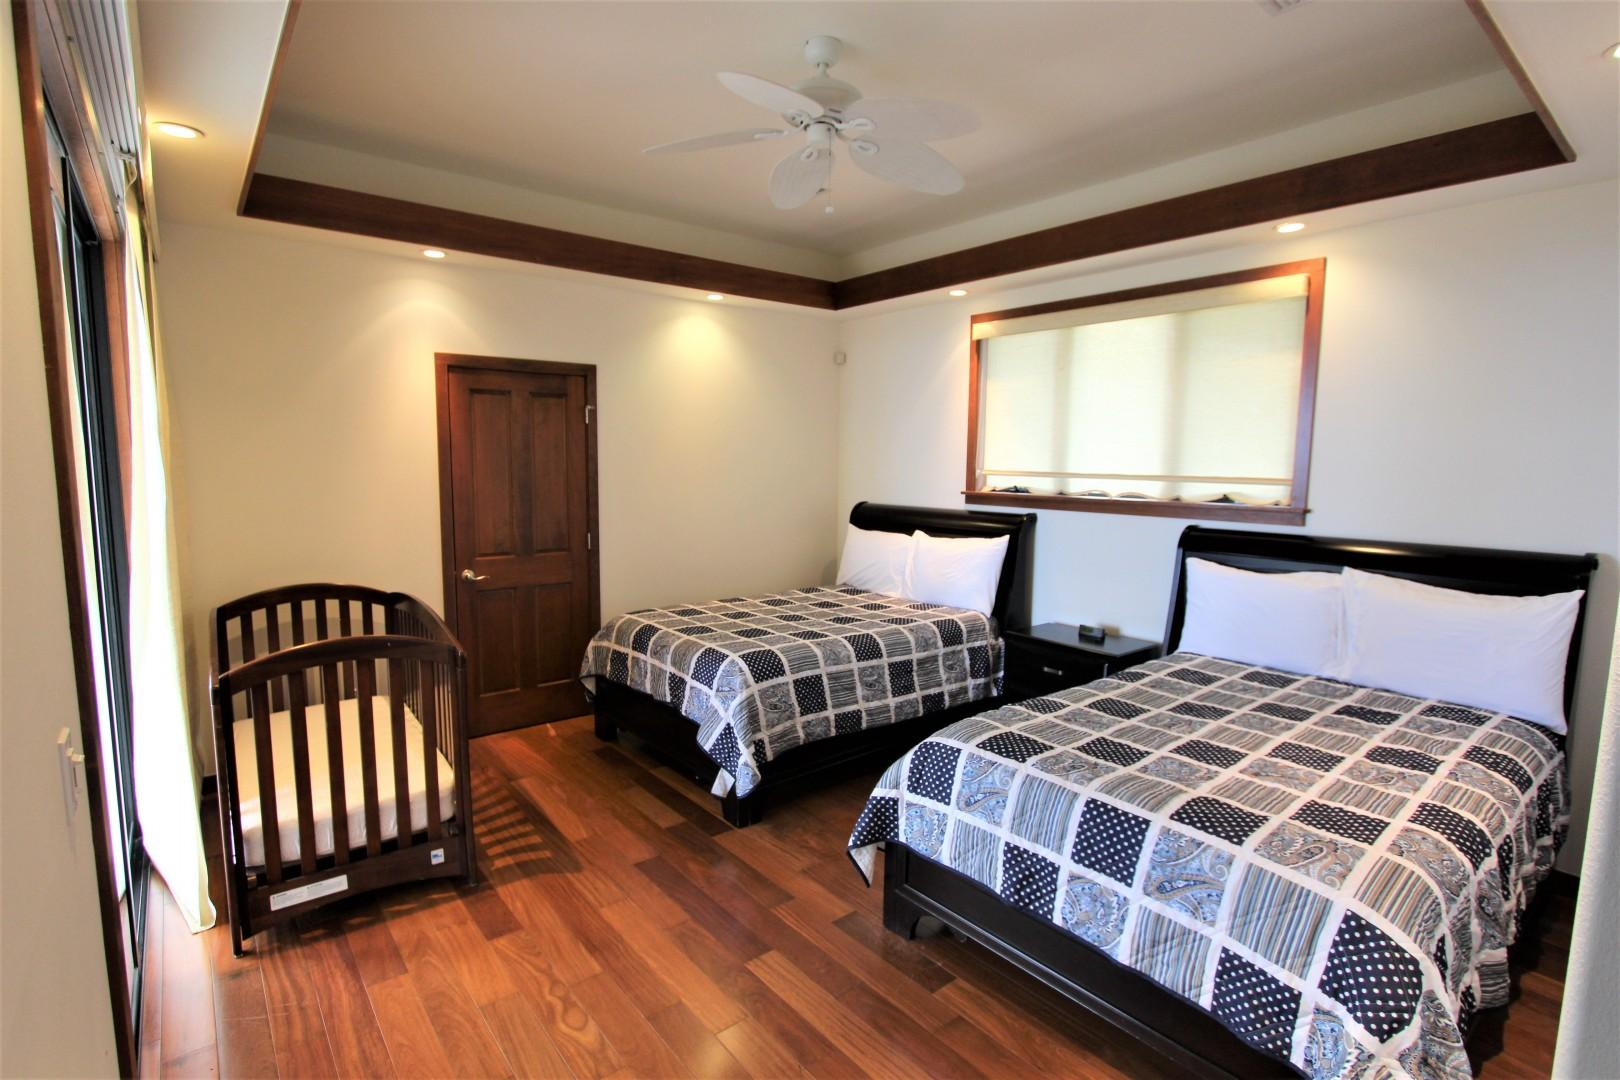 Guest bedroom equipped with two Double beds and crib